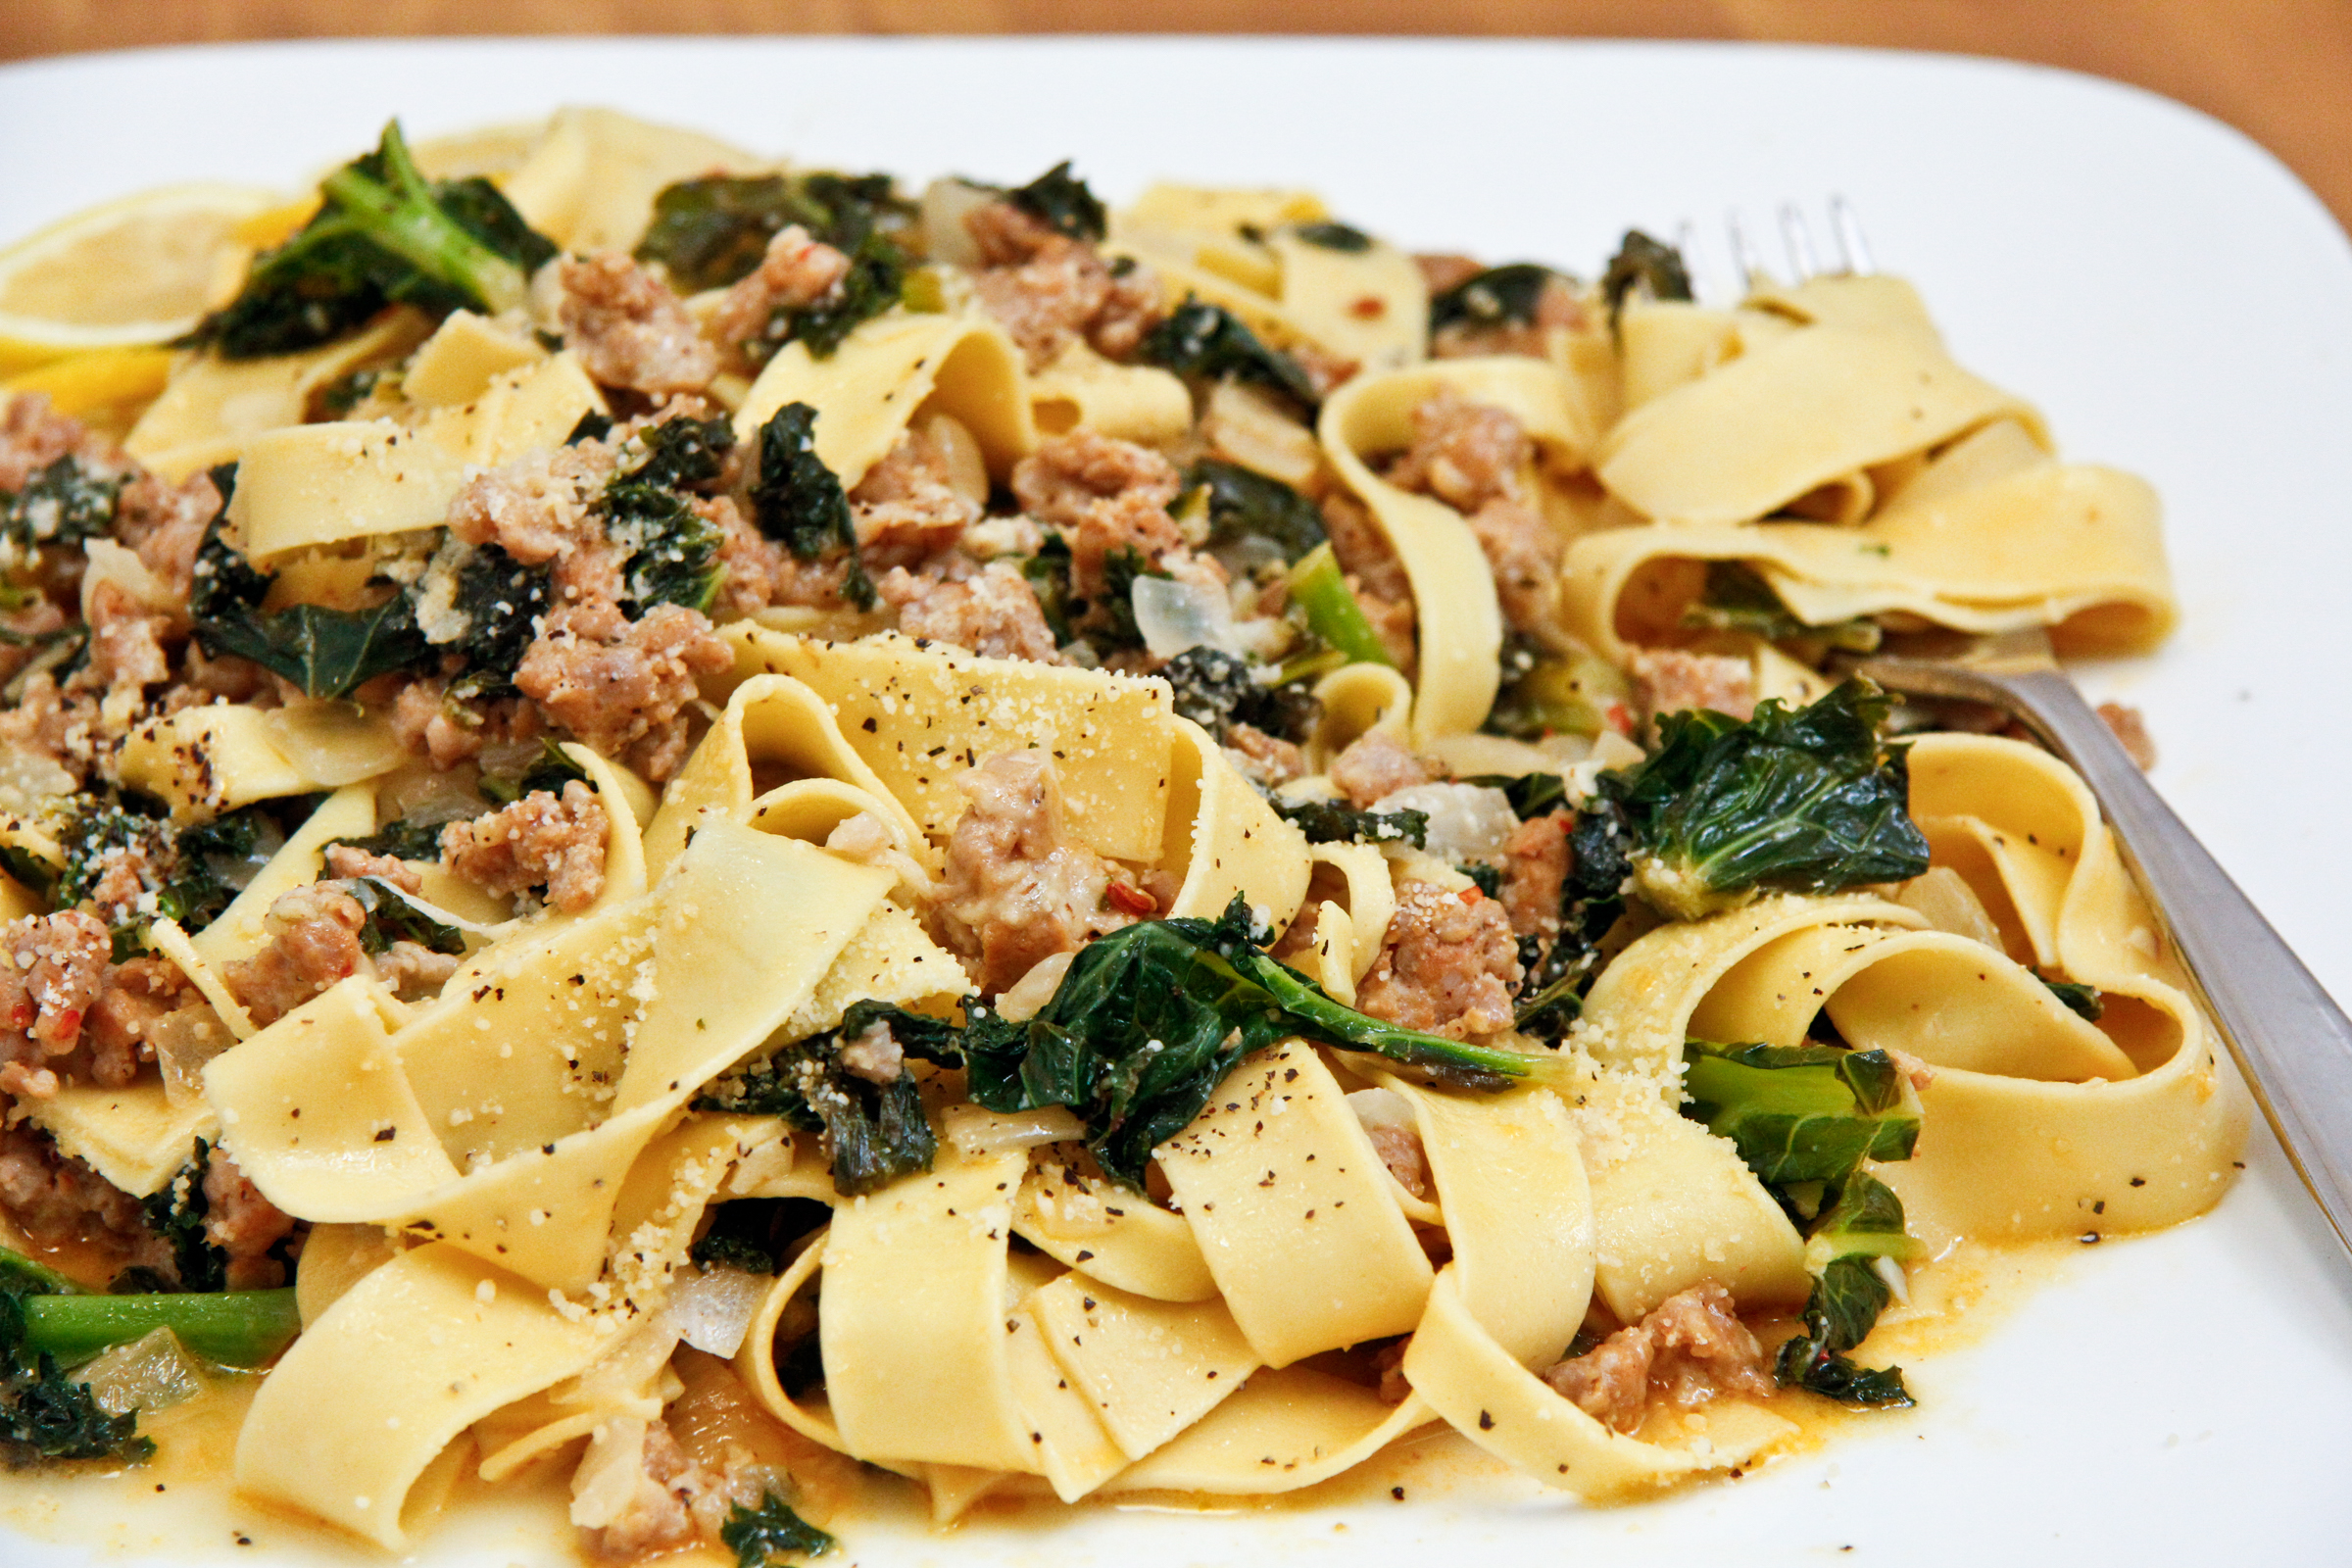 Pappardelle with Sausage and Kale | ChefJulieYoon.com